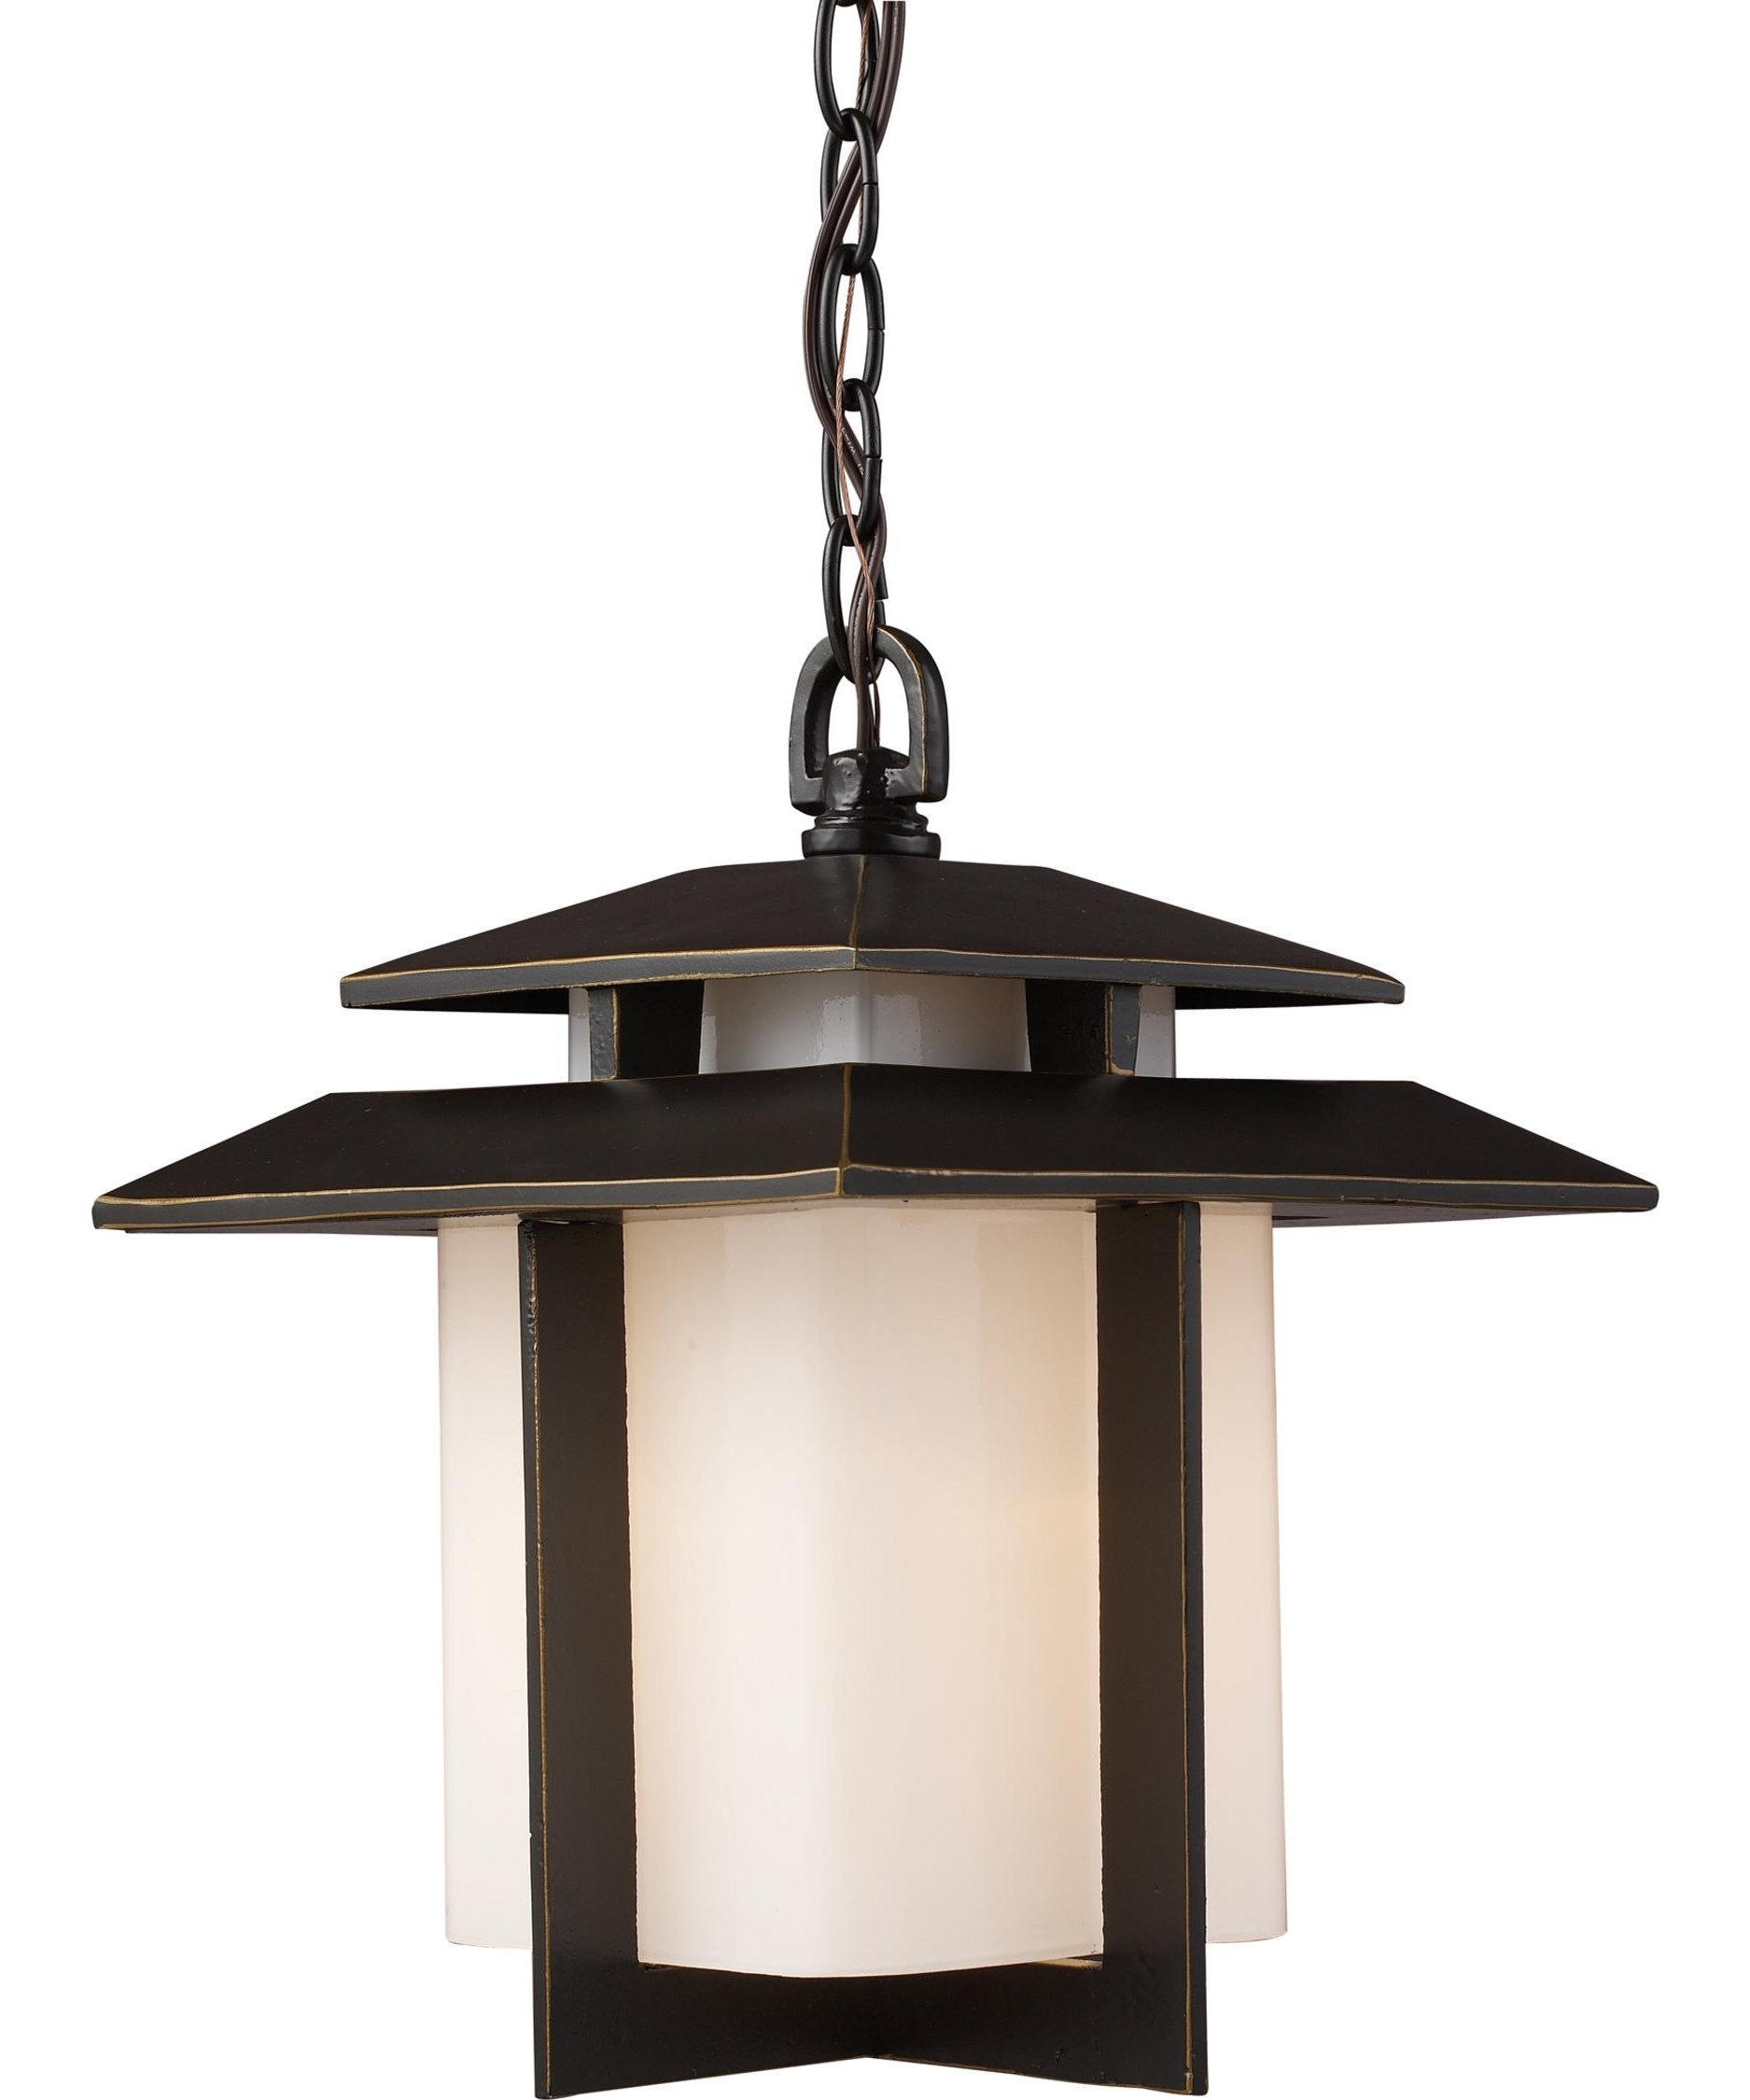 Outdoor Ceiling Pendant Lights With Regard To Best And Newest Light : Ceiling Lights Outdoor (View 12 of 20)